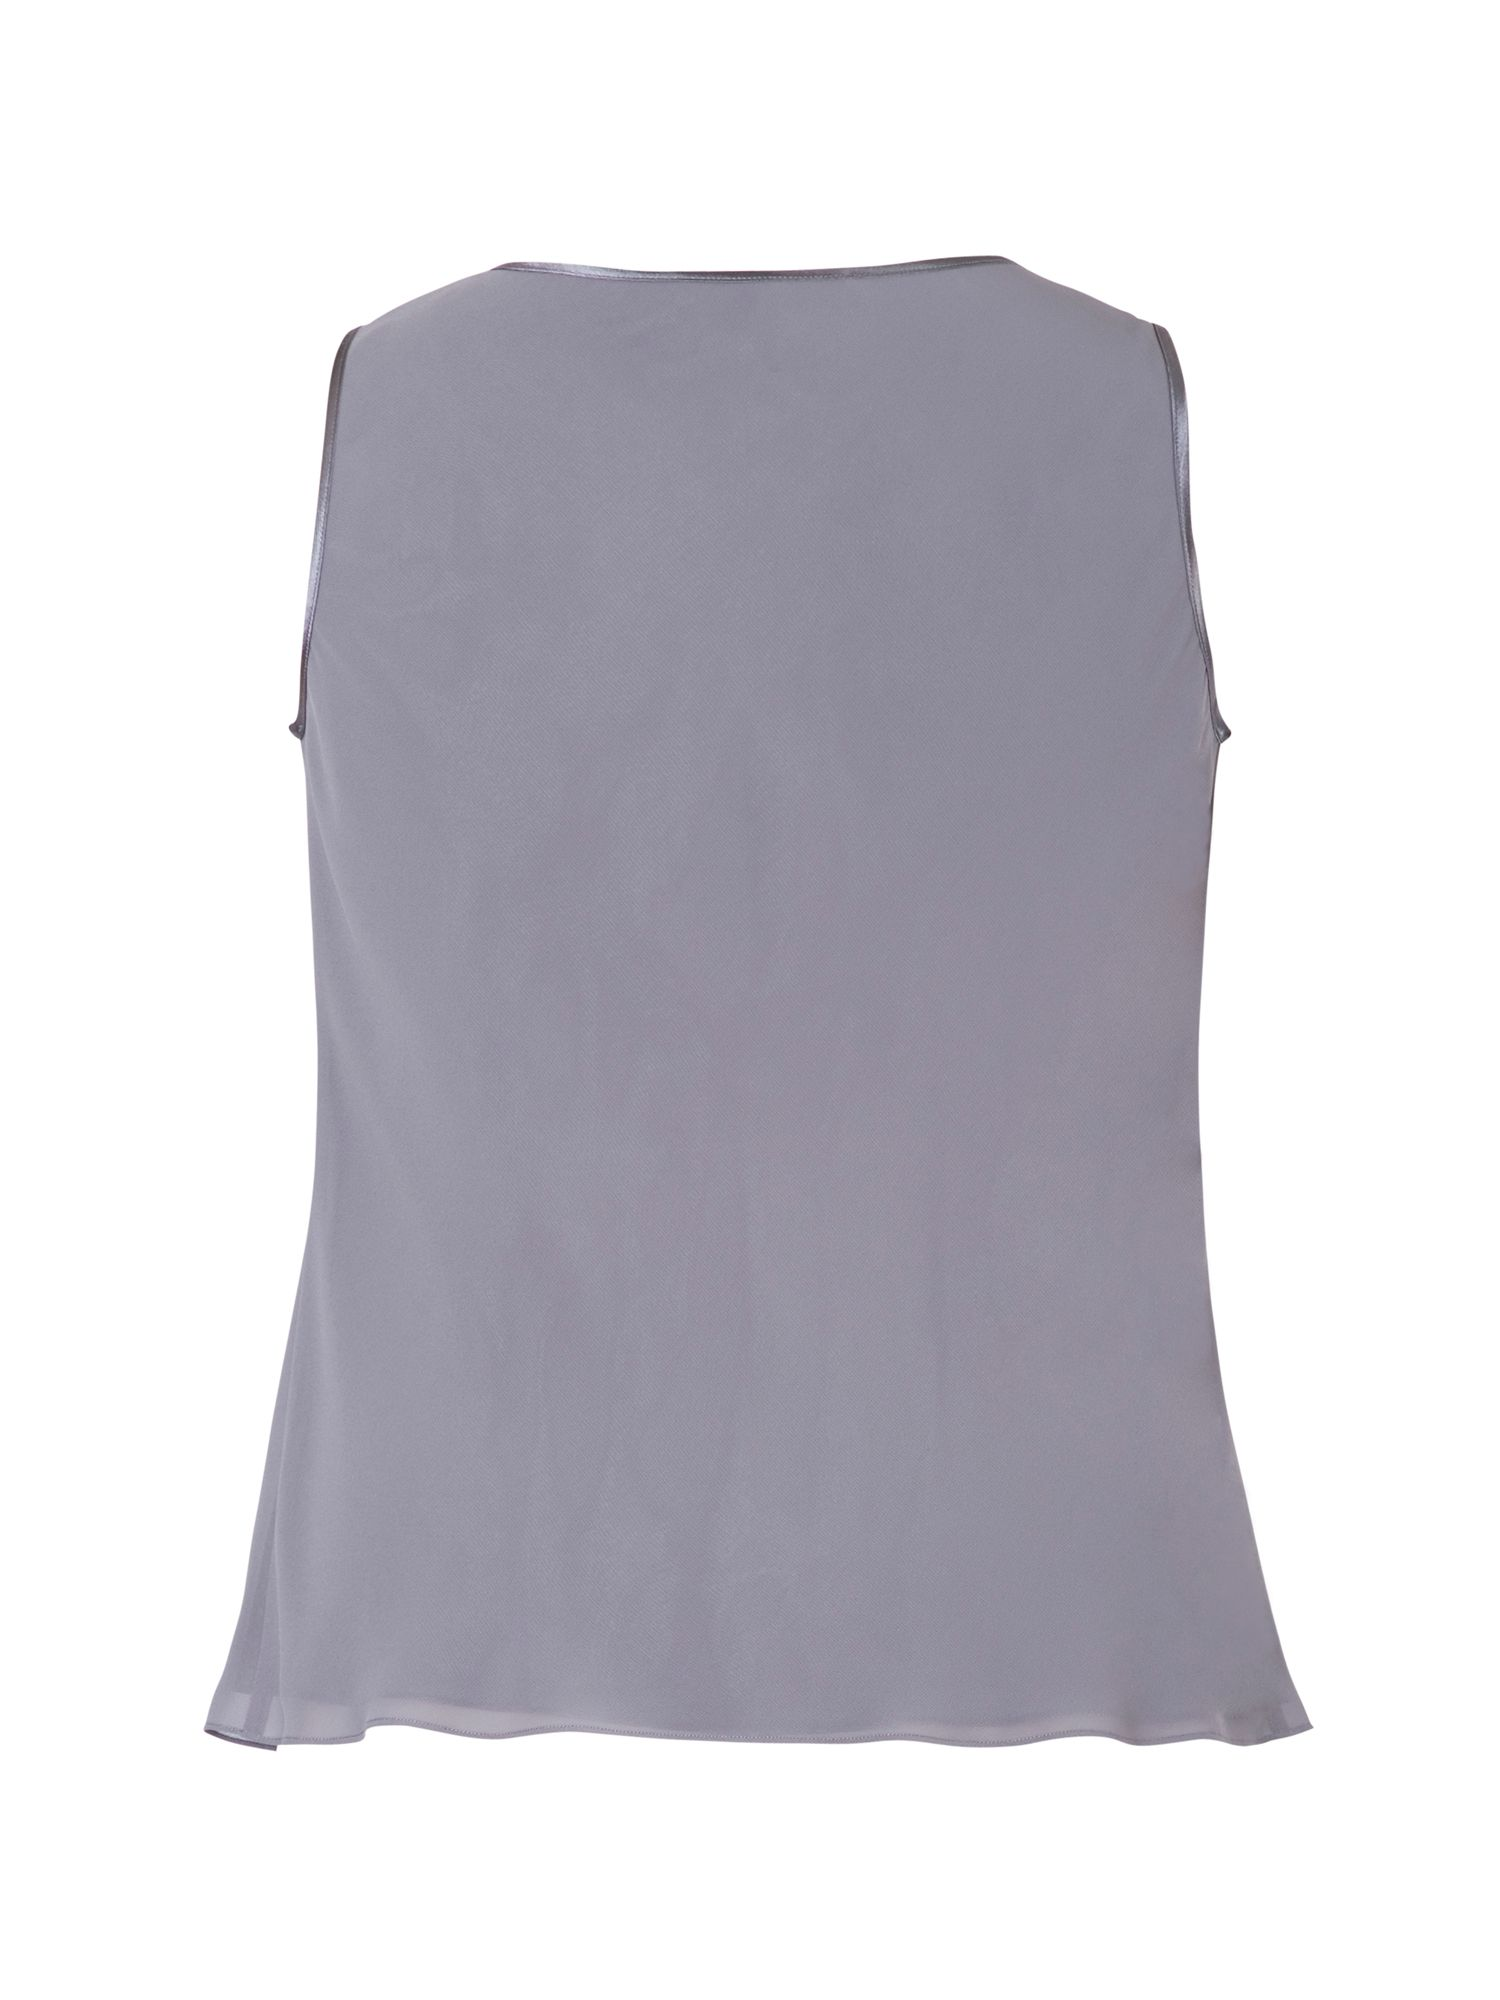 Chiffon Camisole With Satin Trim